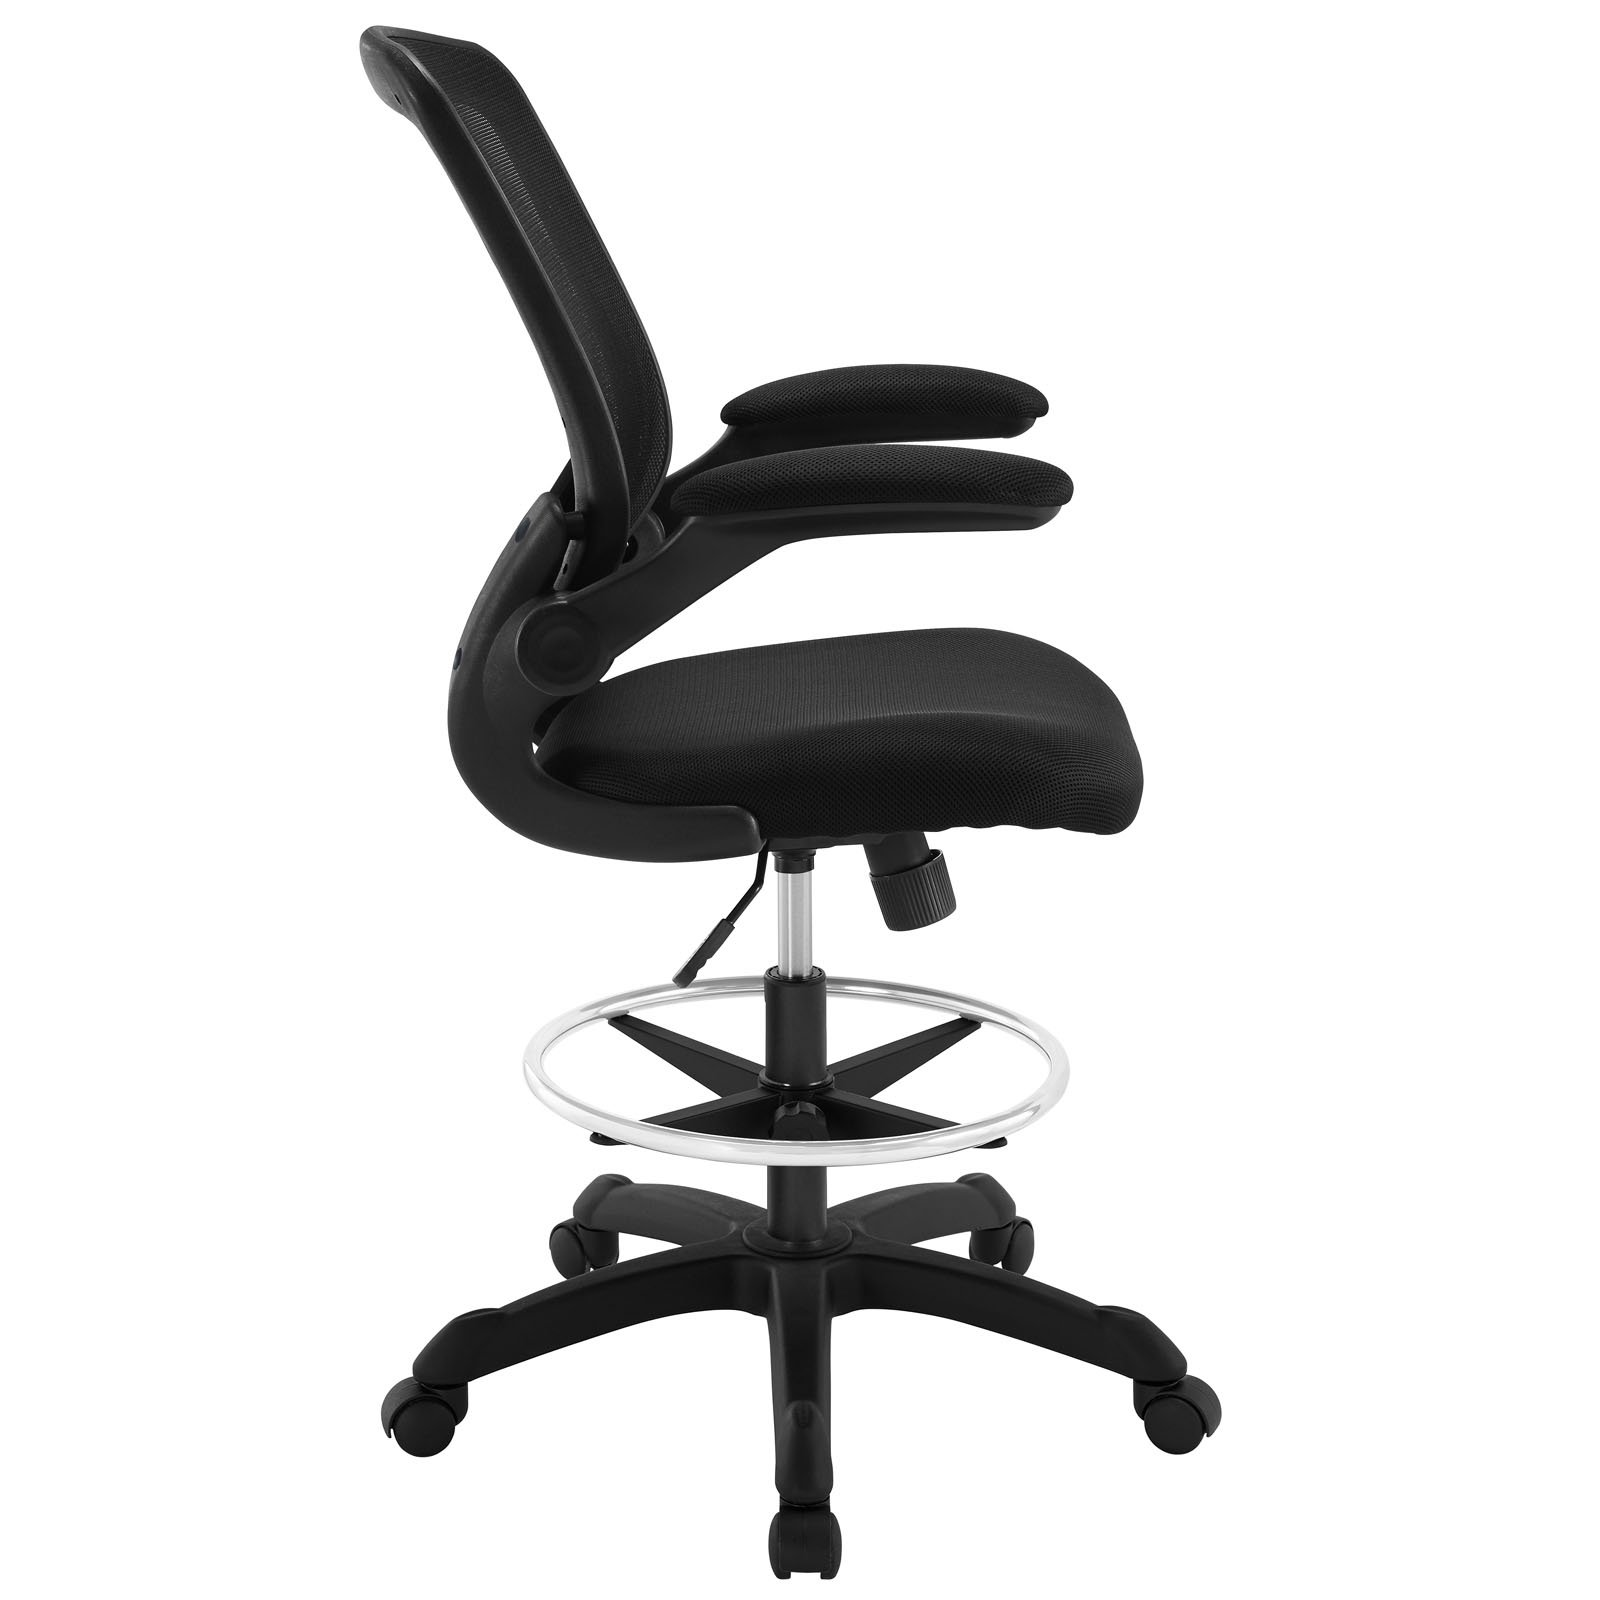 on backless awesome stool ergonomic full white small best with malaysia arms size comfortable most elegant safety drafting office bar table desk picture exciting height desks chair space tall standing mesh rolling artist for of mod red chairs kneeling bo furniture terrific casters sciatica